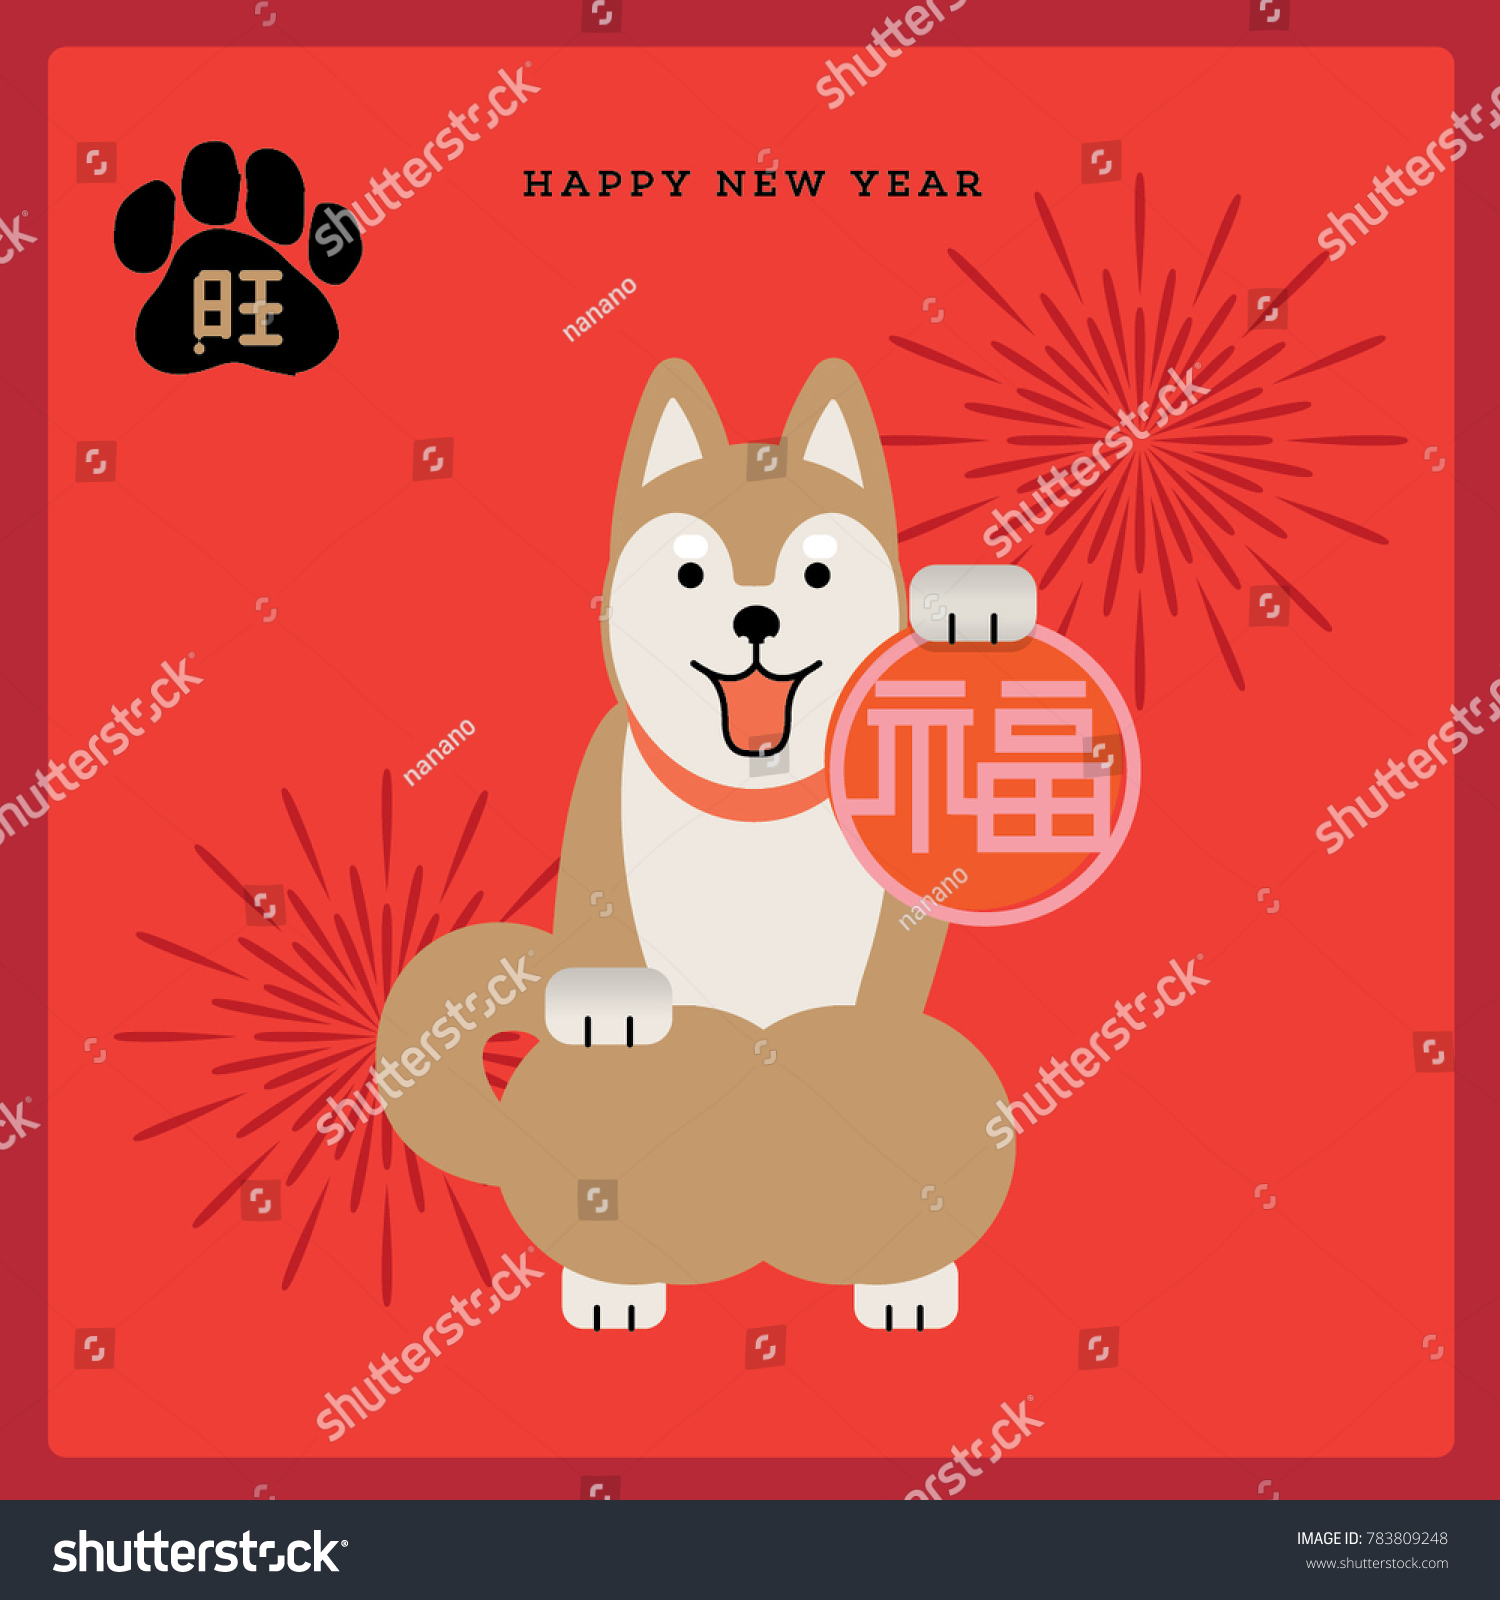 happy new year year of dog 2018 invitation card chinese new year 2018